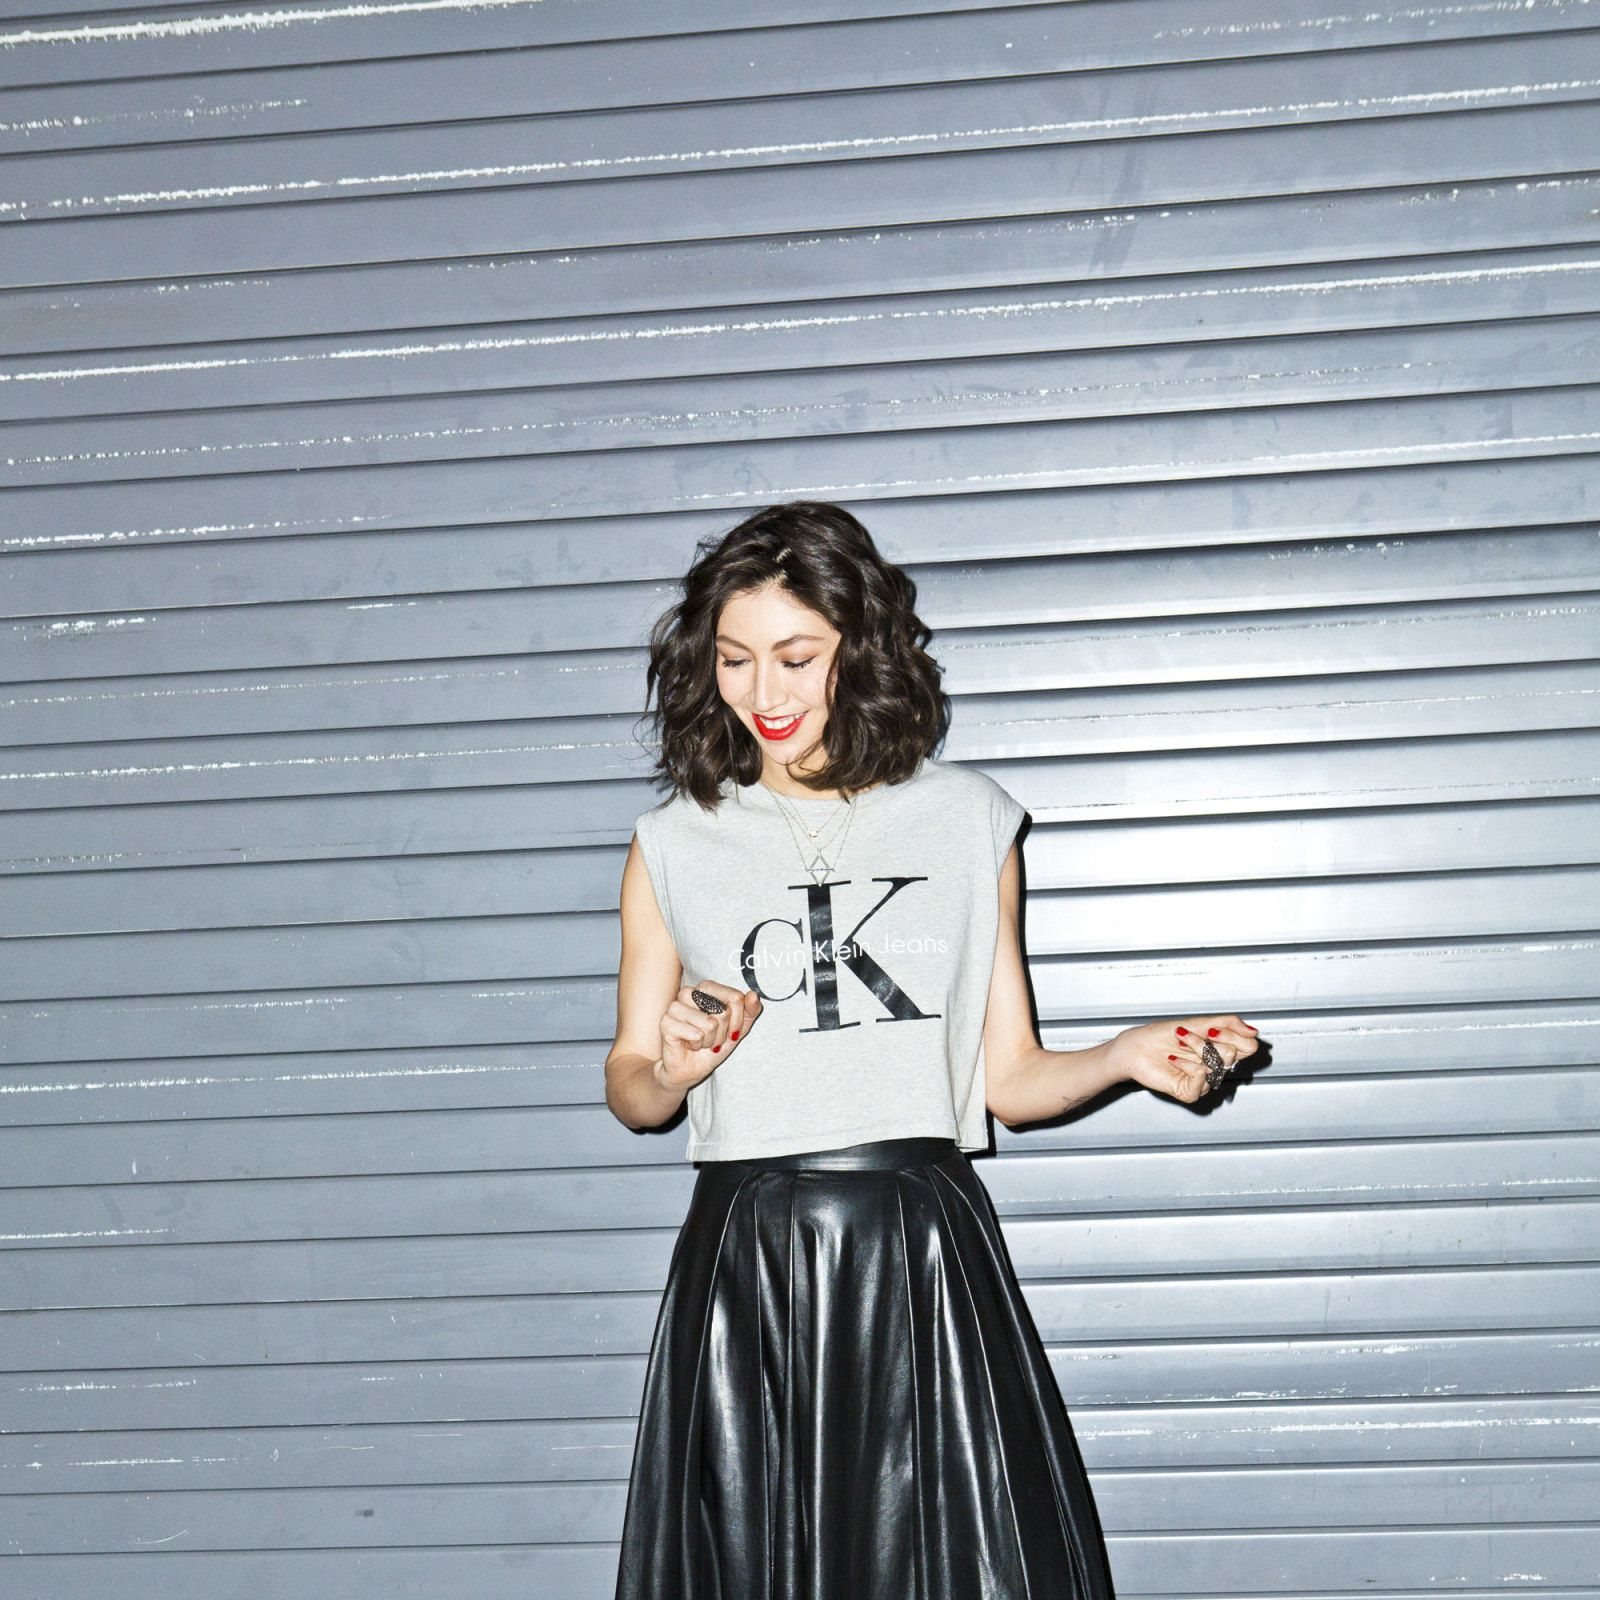 "<p>Celebrity agent, The Society Management. ""My most treasured item is my mom's tee shirt from the '70s that says 'Makin' Bacon' on the front and 'Good ass is hard to find' on the back.""</p><p>Top, Calvin Klein Jeans, $106. Skirt, Adeam. Shoes, Dior. Necklace, Pamela Love, $560. All other jewelry, Ashleah's own.</p>"